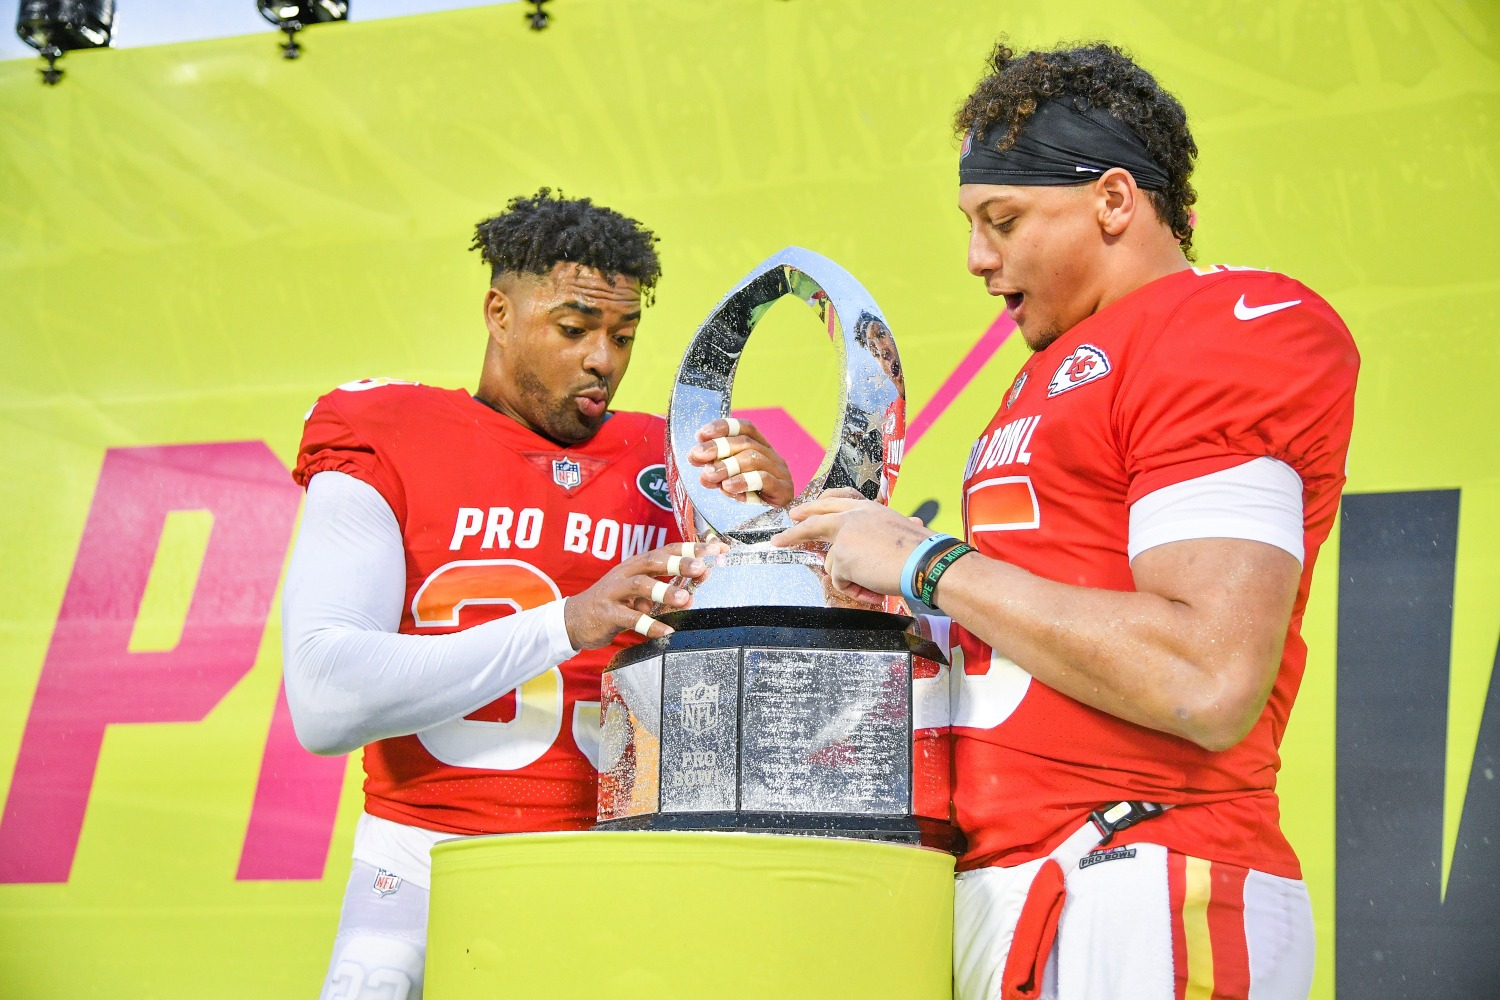 Patrick Mahomes can make an obscene amount of money for winning the NFL MVP award.